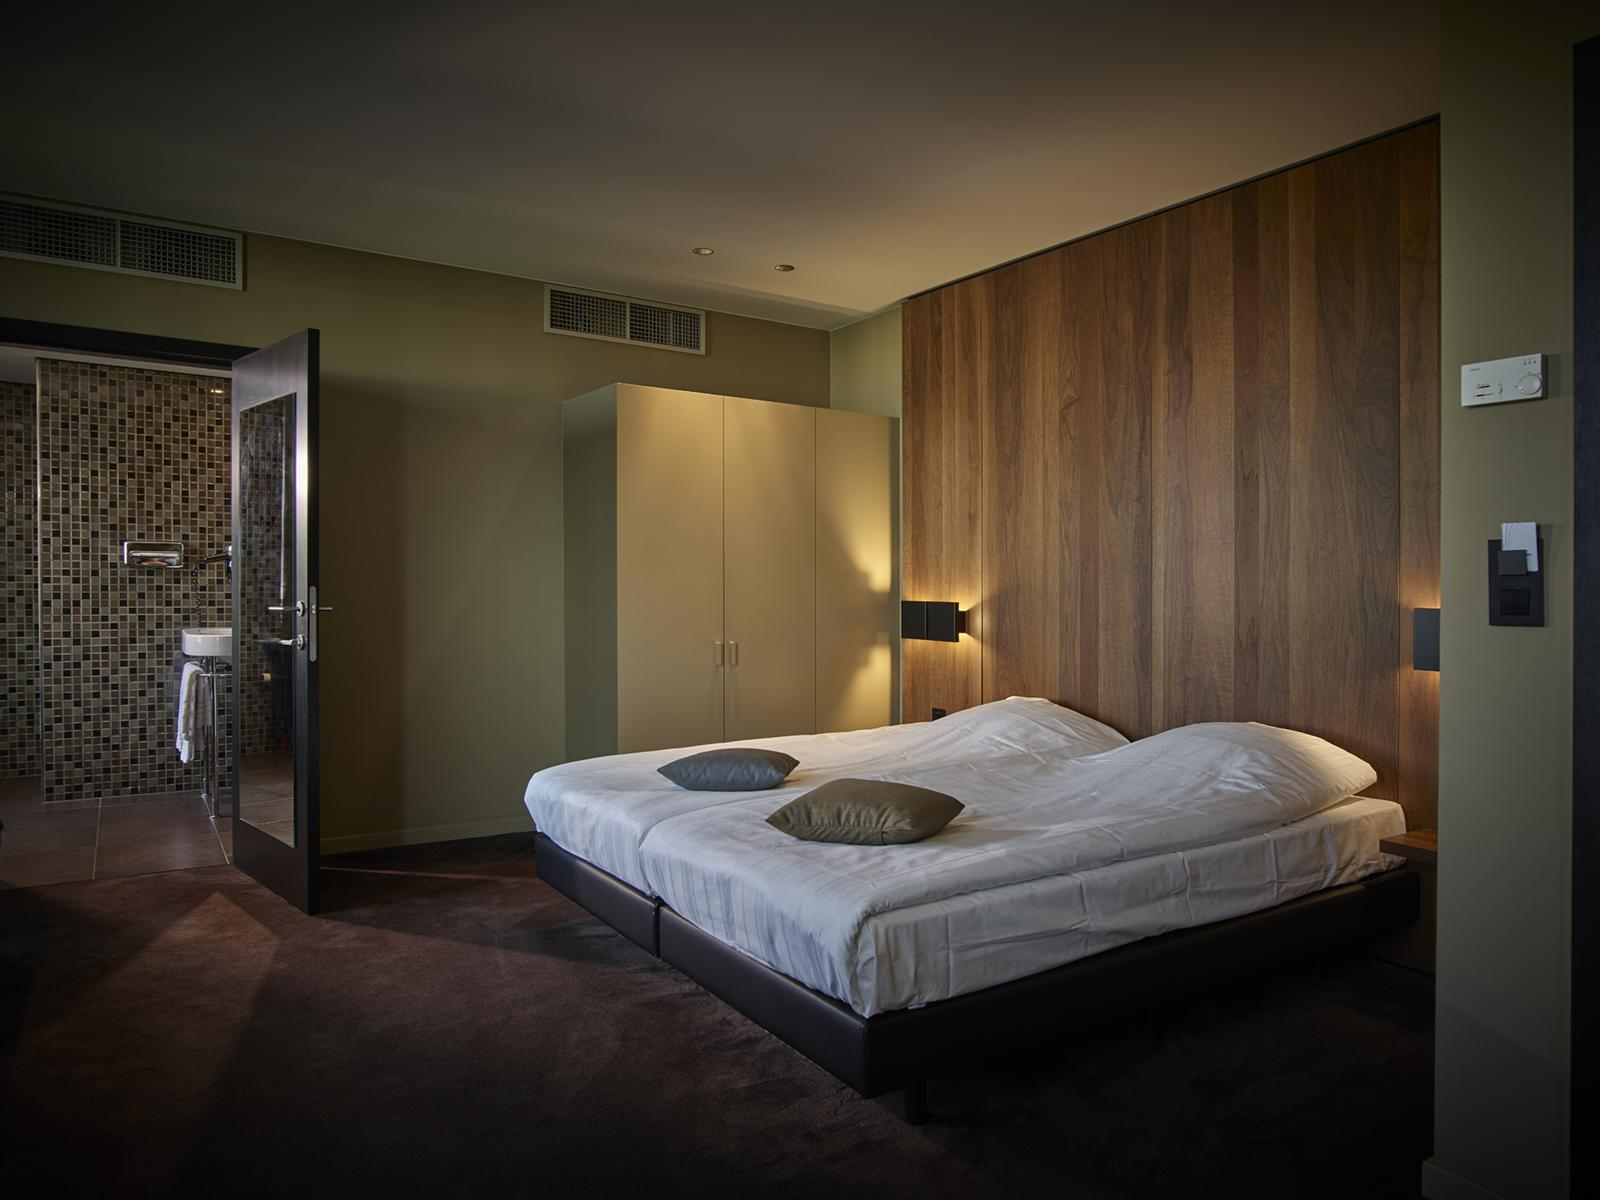 Deluxe Room, modern luxury